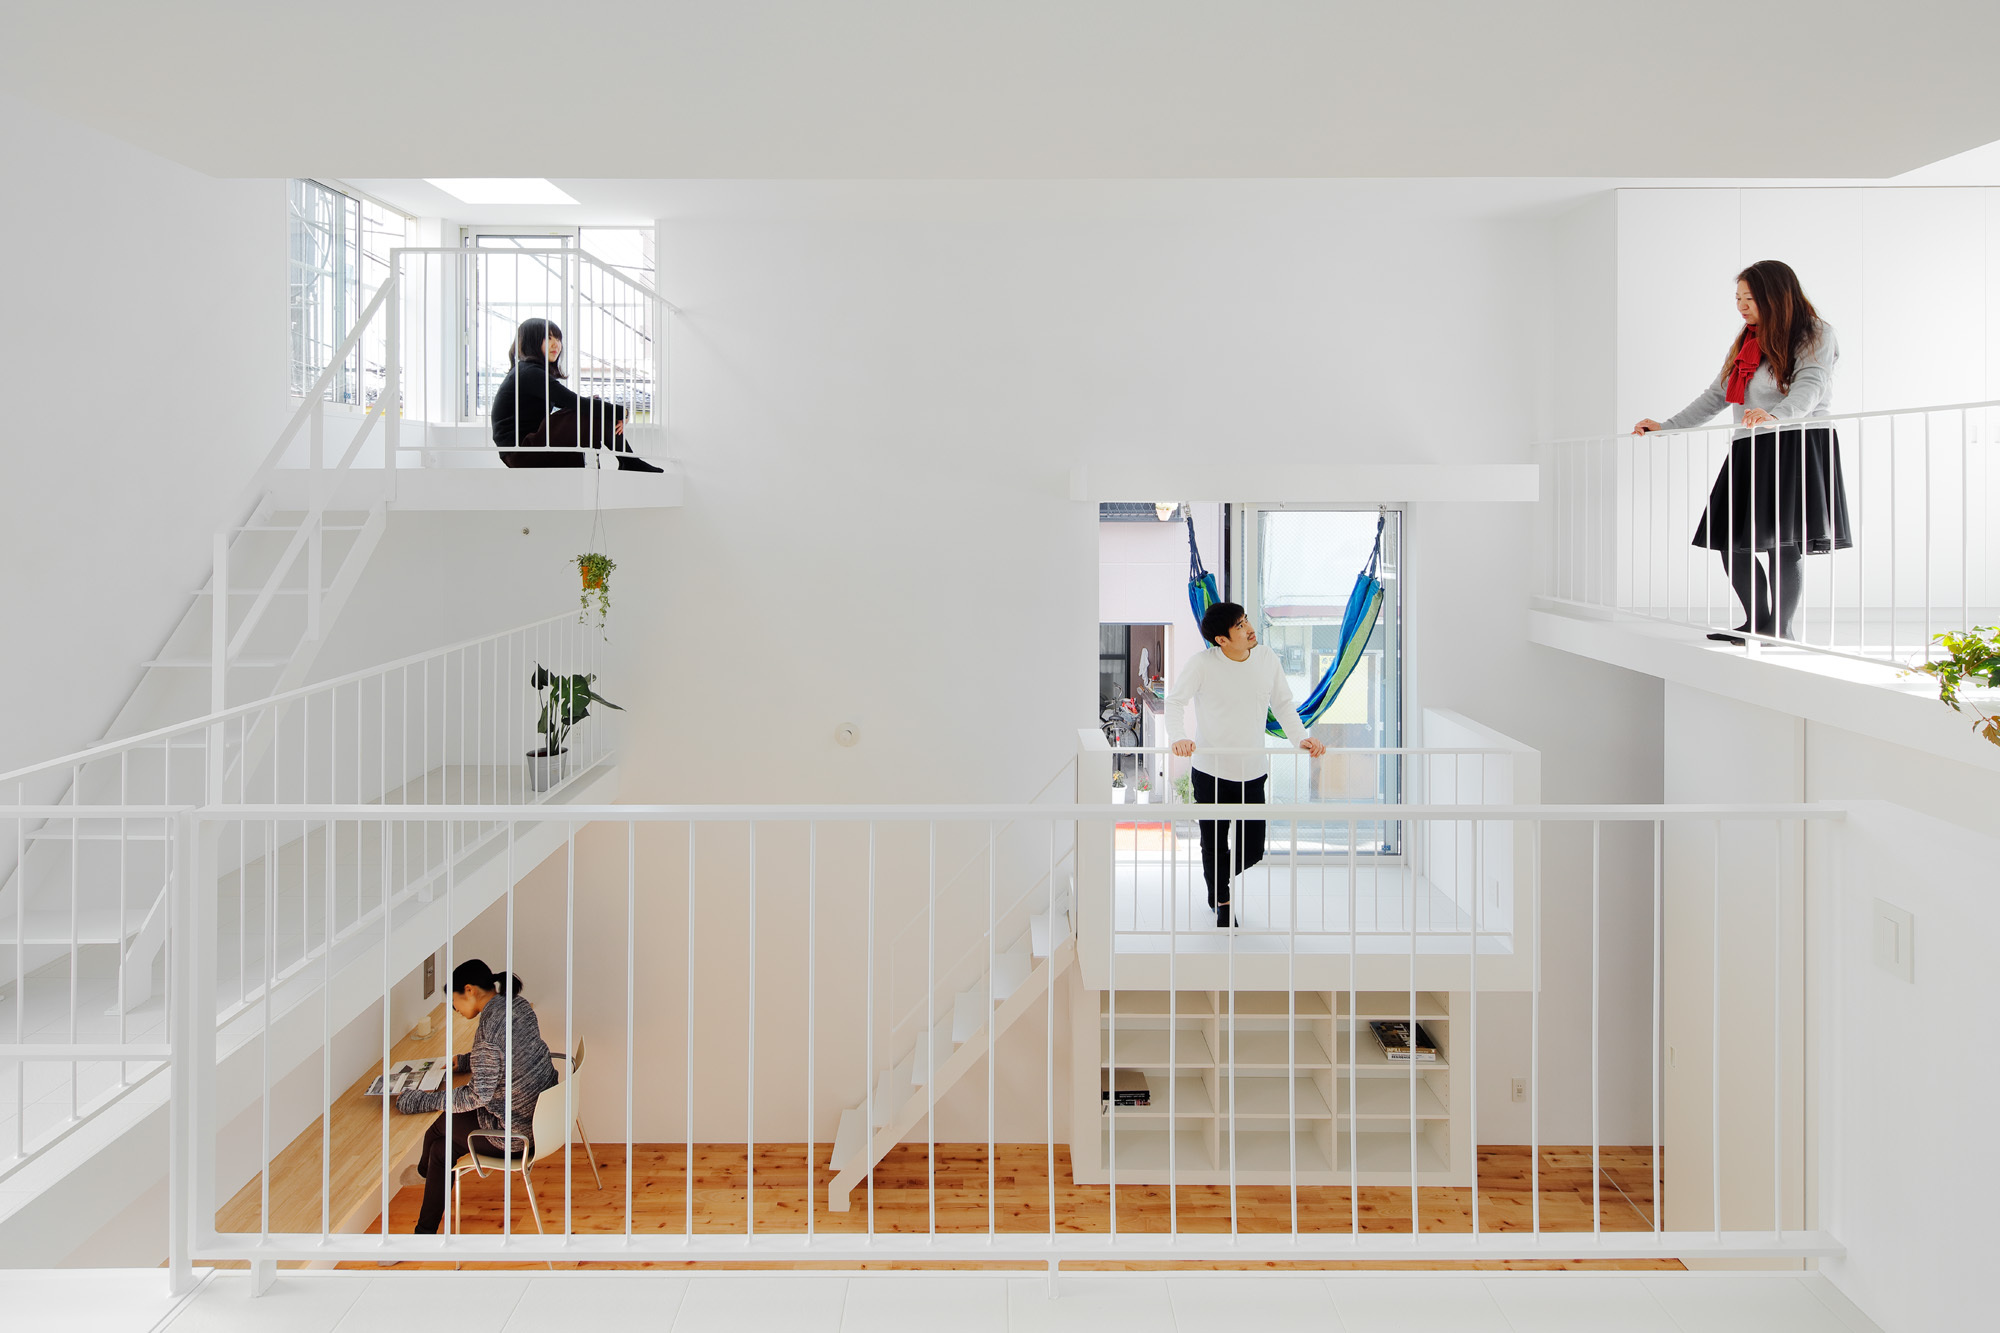 Balcony House / Takeshi Hosaka Architects